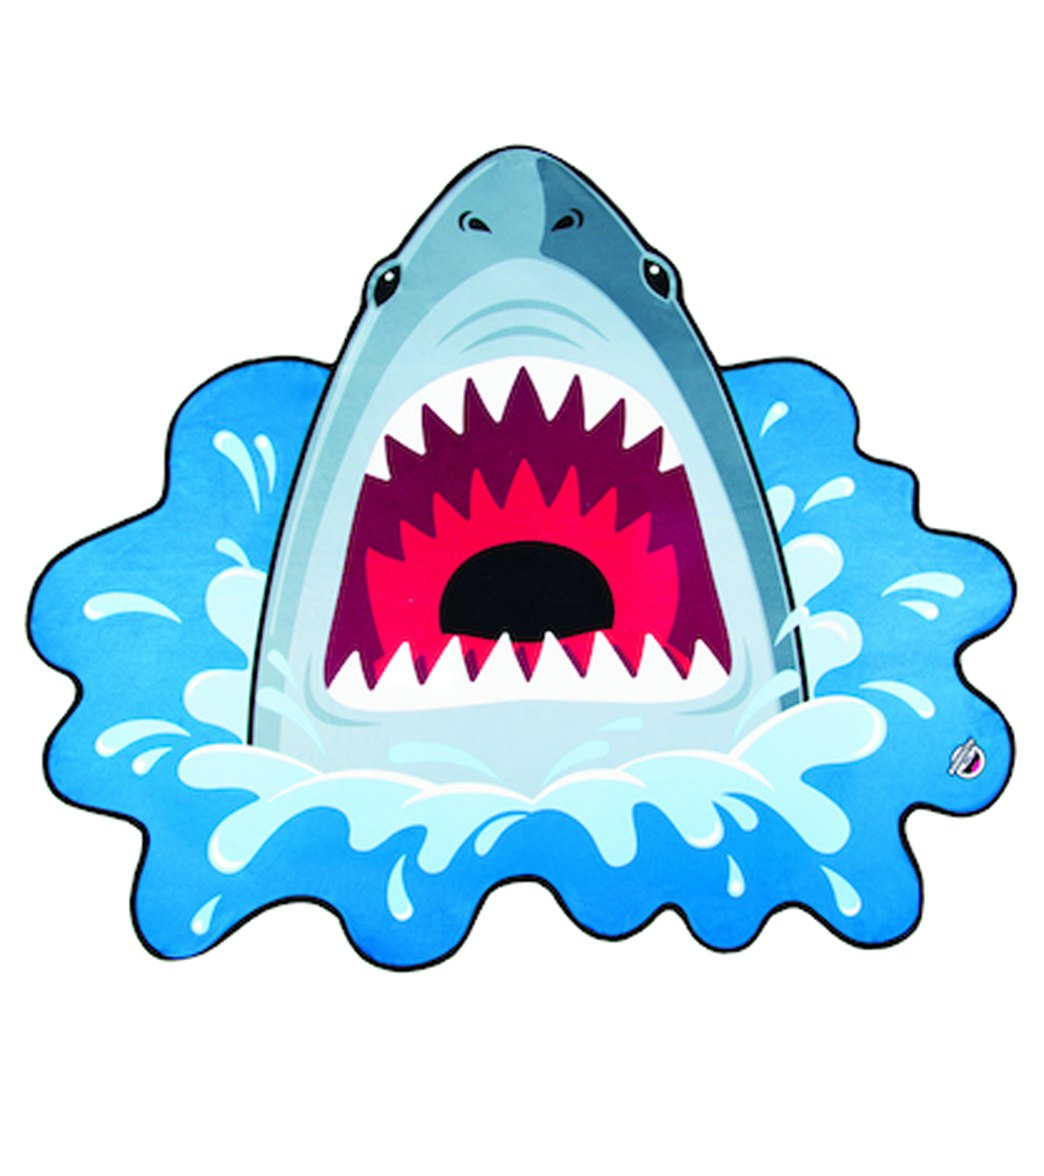 e8115509b302 Big Mouth Toys Shark Beach Blanket at SwimOutlet.com